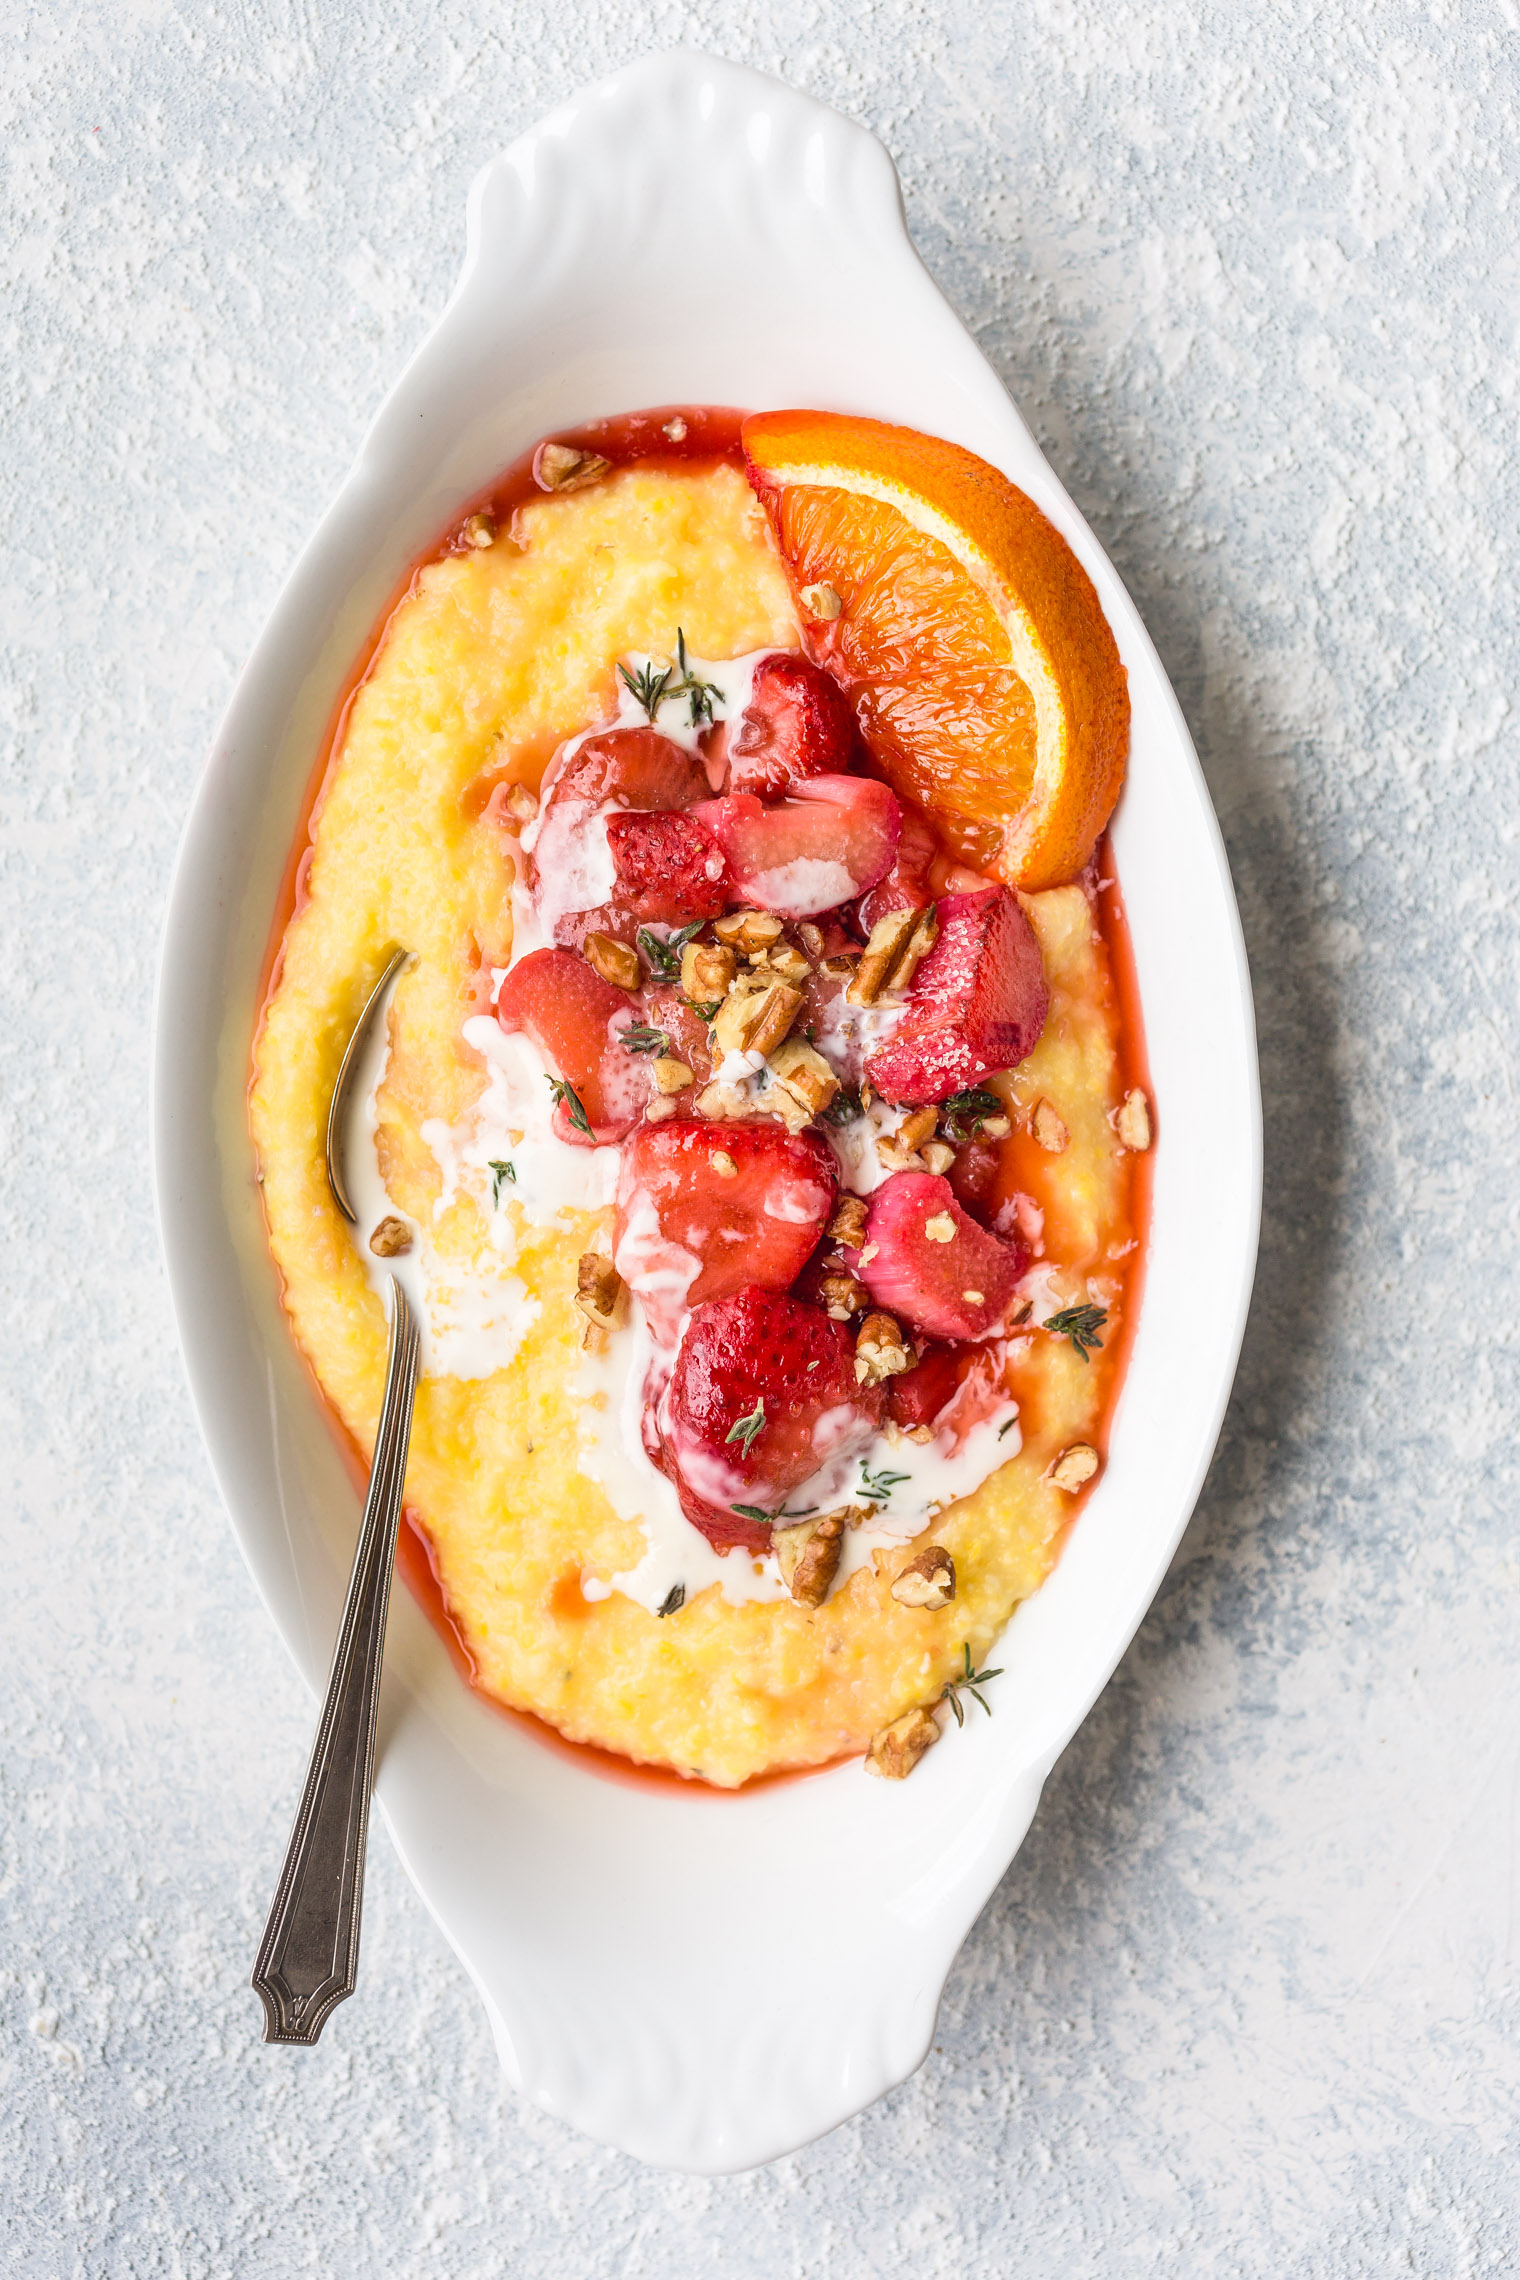 Roasted Strawberry and Rhubarb Grits with Toasted Pecans